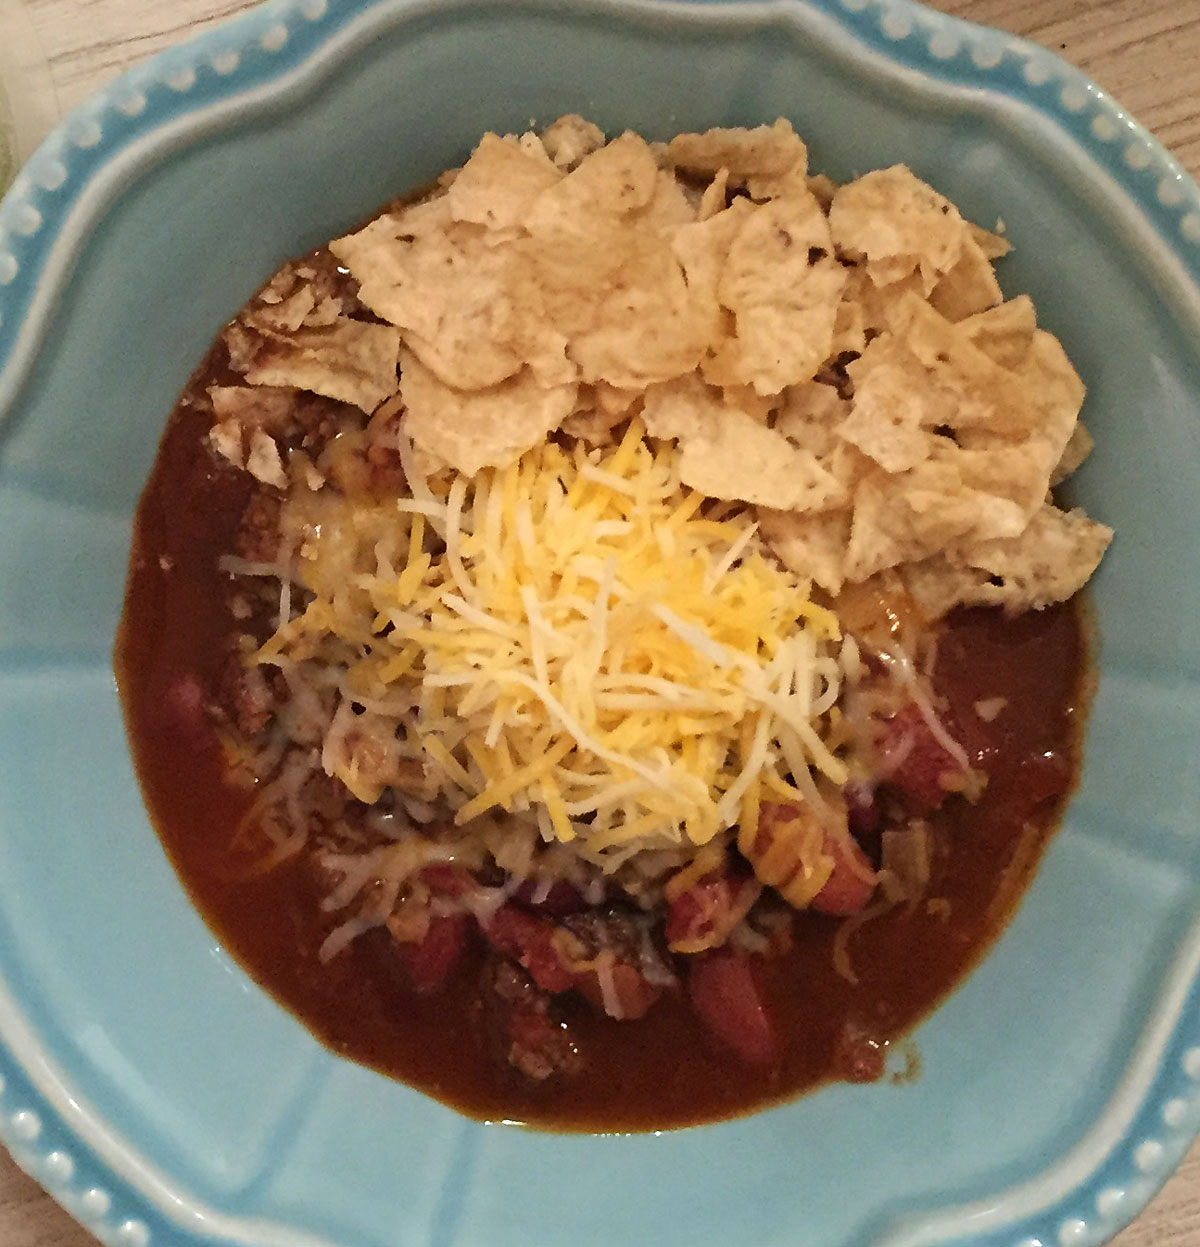 Chili-Five-Healthy-Foods-That-Are-Always-In-My-Kitchen-By-Bumble-and-Bustle